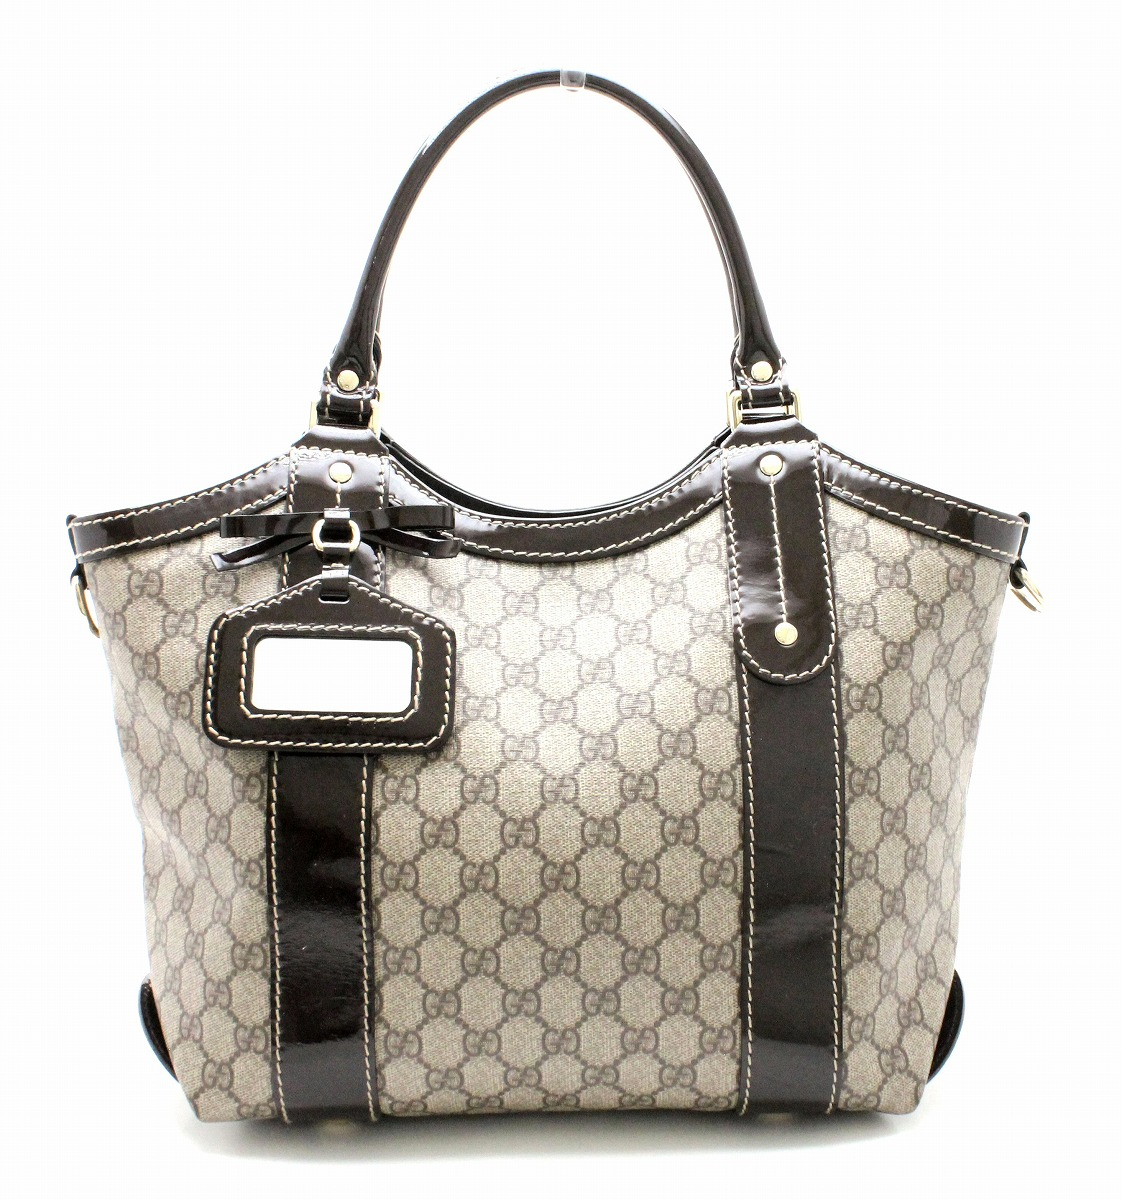 low priced c828c a7aac バッグ】GUCCI ヴィトン グッチ GGプラス トートバッグ ...